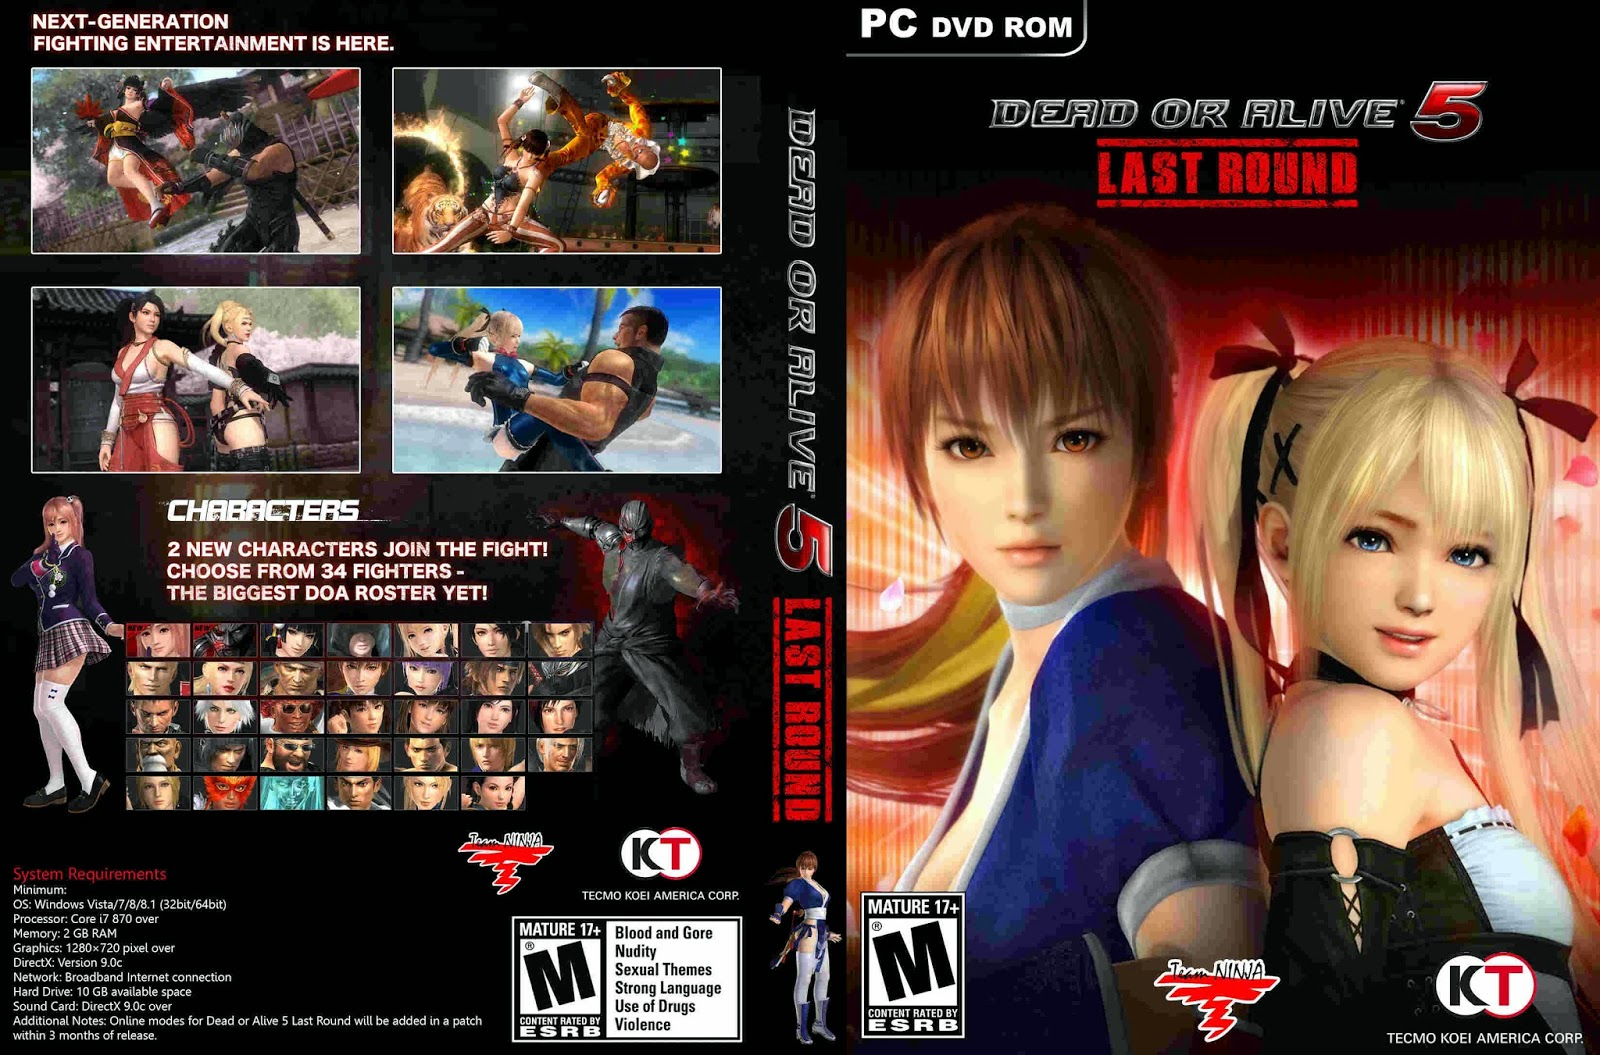 Telecharger DEAD OR ALIVE 5 Last Round Sur PC Avec Crack